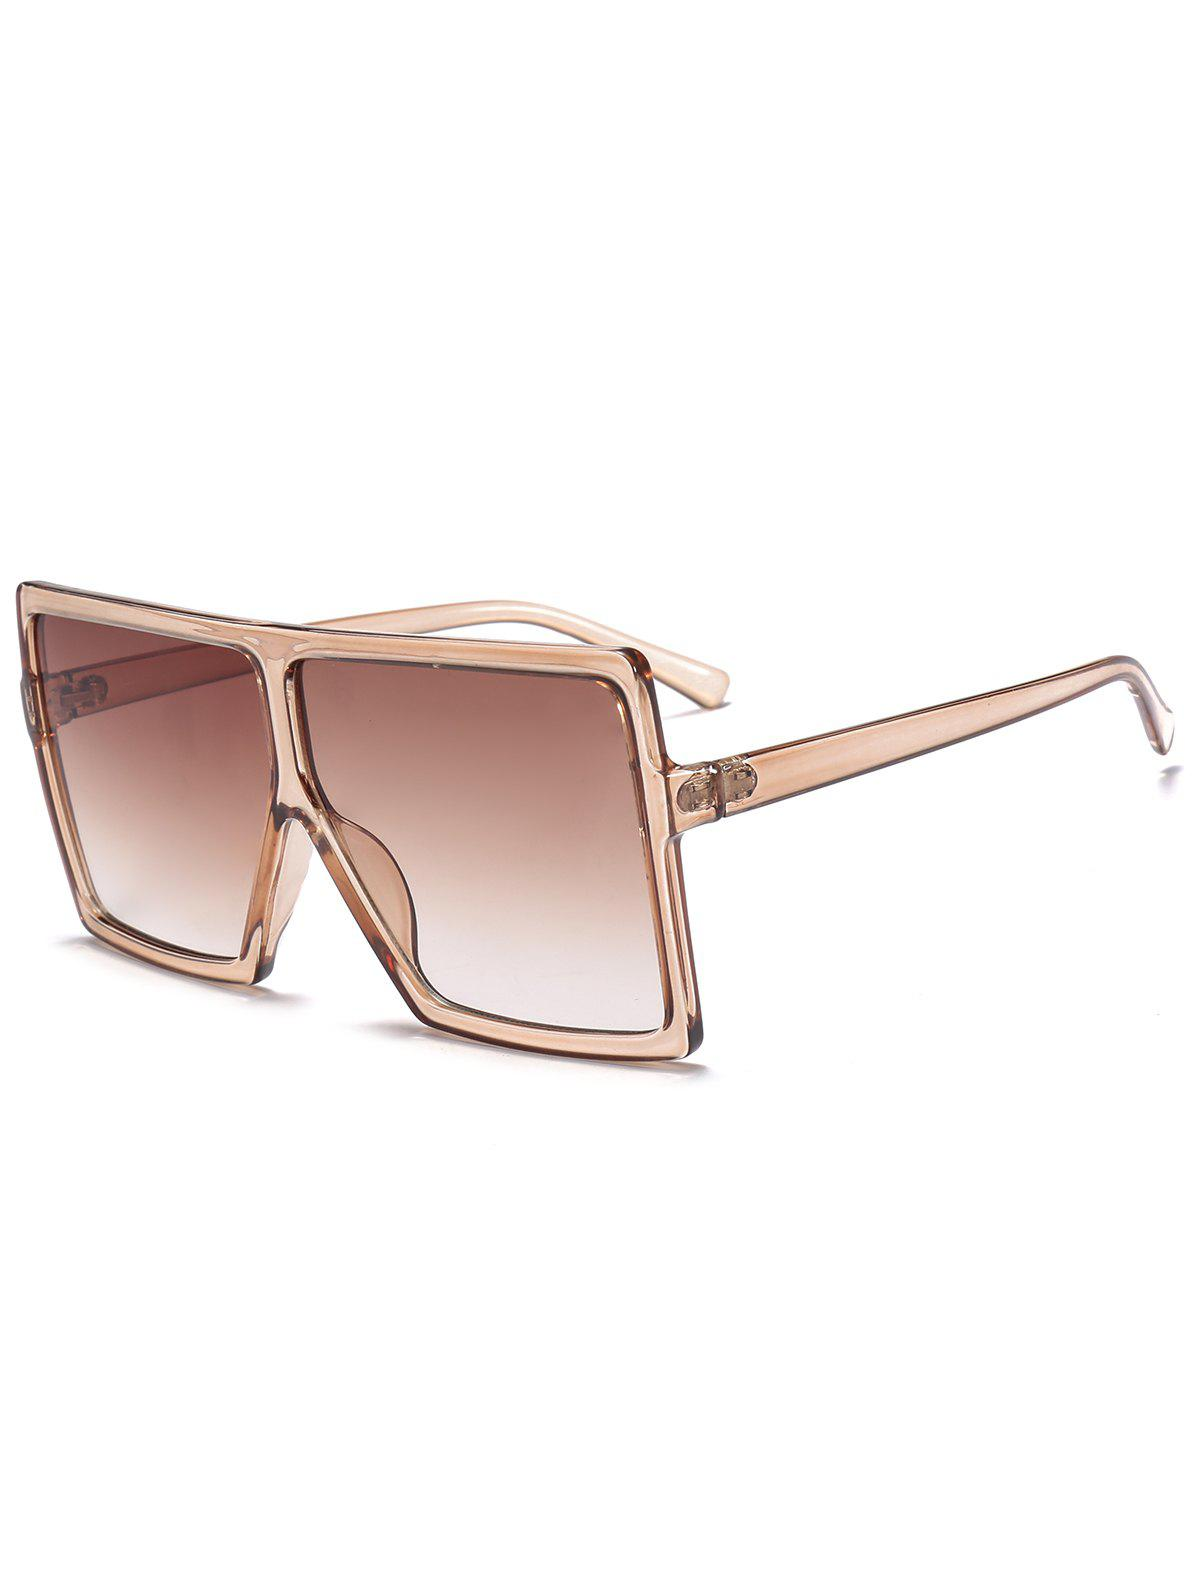 Oversized Square Full Frame SunglassesACCESSORIES<br><br>Color: BROWN; Group: Adult; Gender: For Unisex; Style: Fashion; Shape: Square; Lens material: Resin; Frame material: Other; Frame Color: Multi-color; Lens height: 6.4CM; Lens width: 6.8CM; Temple Length: 14CM; Nose: 1.2CM; Frame Length: 14.9CM; Weight: 0.0900kg; Package Contents: 1 x Sunglasses;